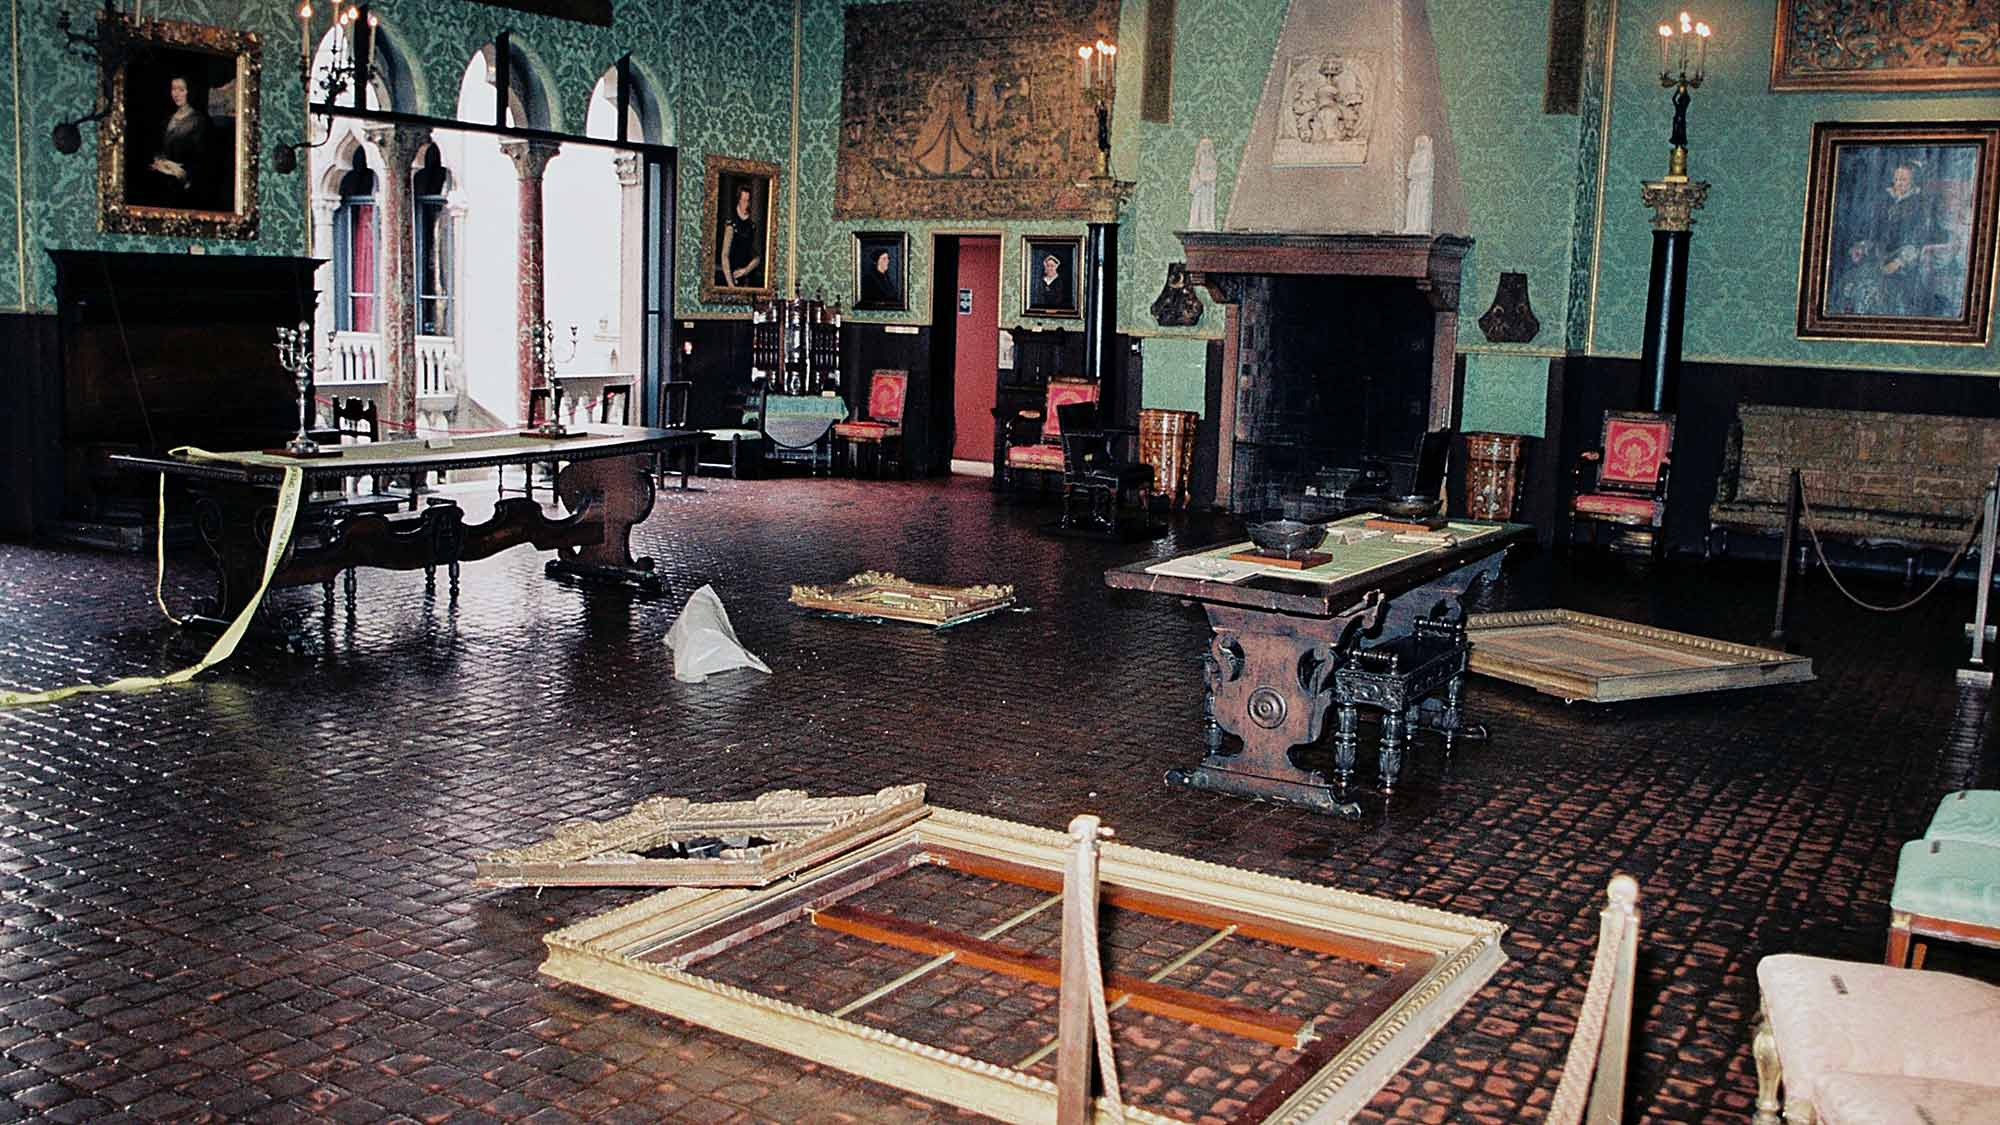 A photo of the crime scene at the Isabella Stewart Gardner Museum